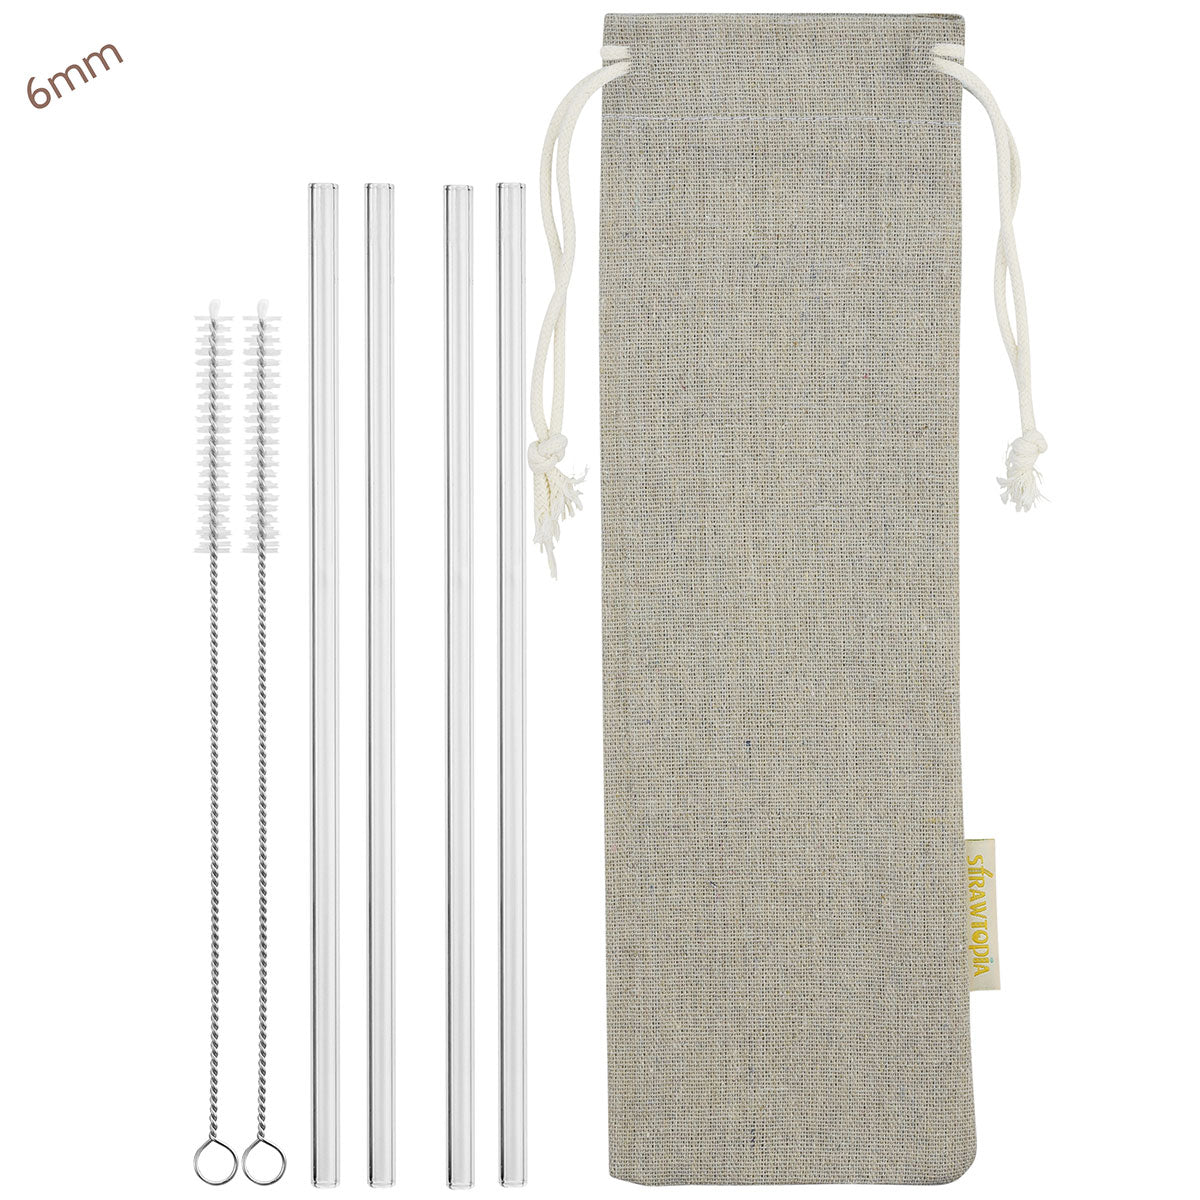 1 Brush Free Shipping Trustful 4 Pcs Straight Stainless Steel Metal Drinking Straw Reusable Washable Sports & Entertainment